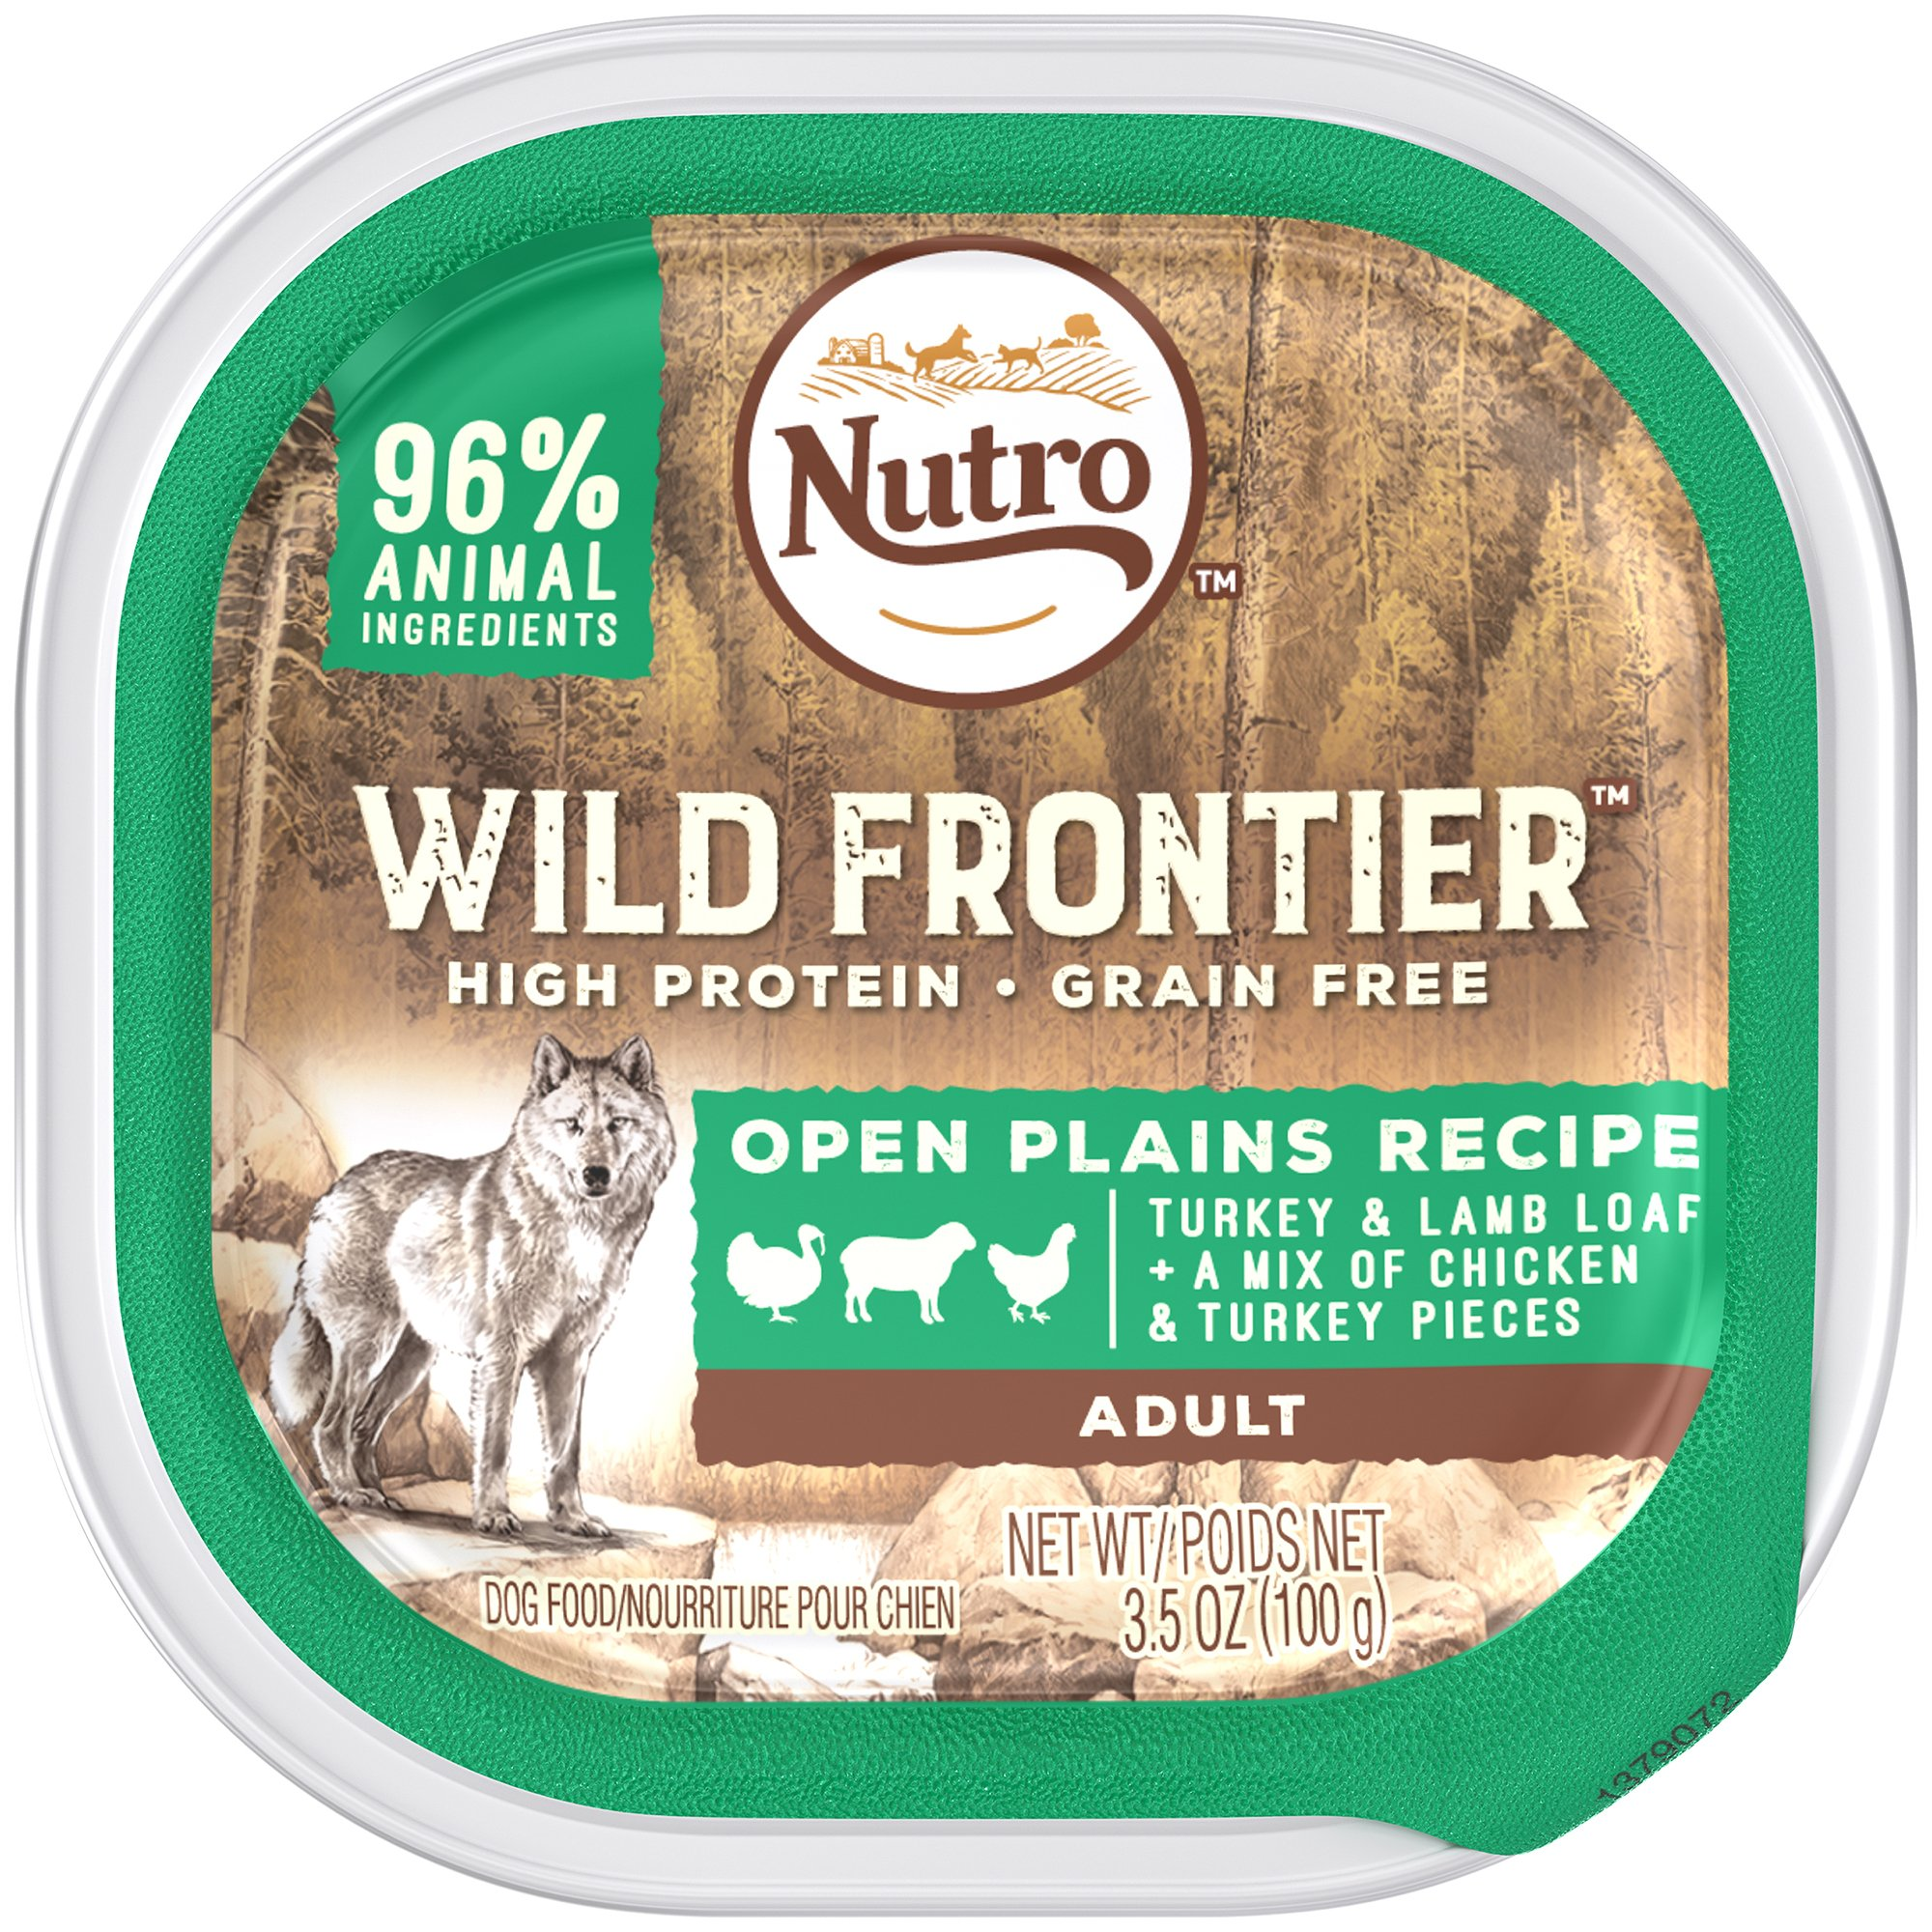 DISCONTINUED: NUTRO Wild Frontier Open Plains Recipe Turkey and Lamb Loaf With a Mix of Chicken and Turkey Pieces Dog Food Trays 3.5 Ounces (Pack of 24) by Wild Frontier Wet Dog